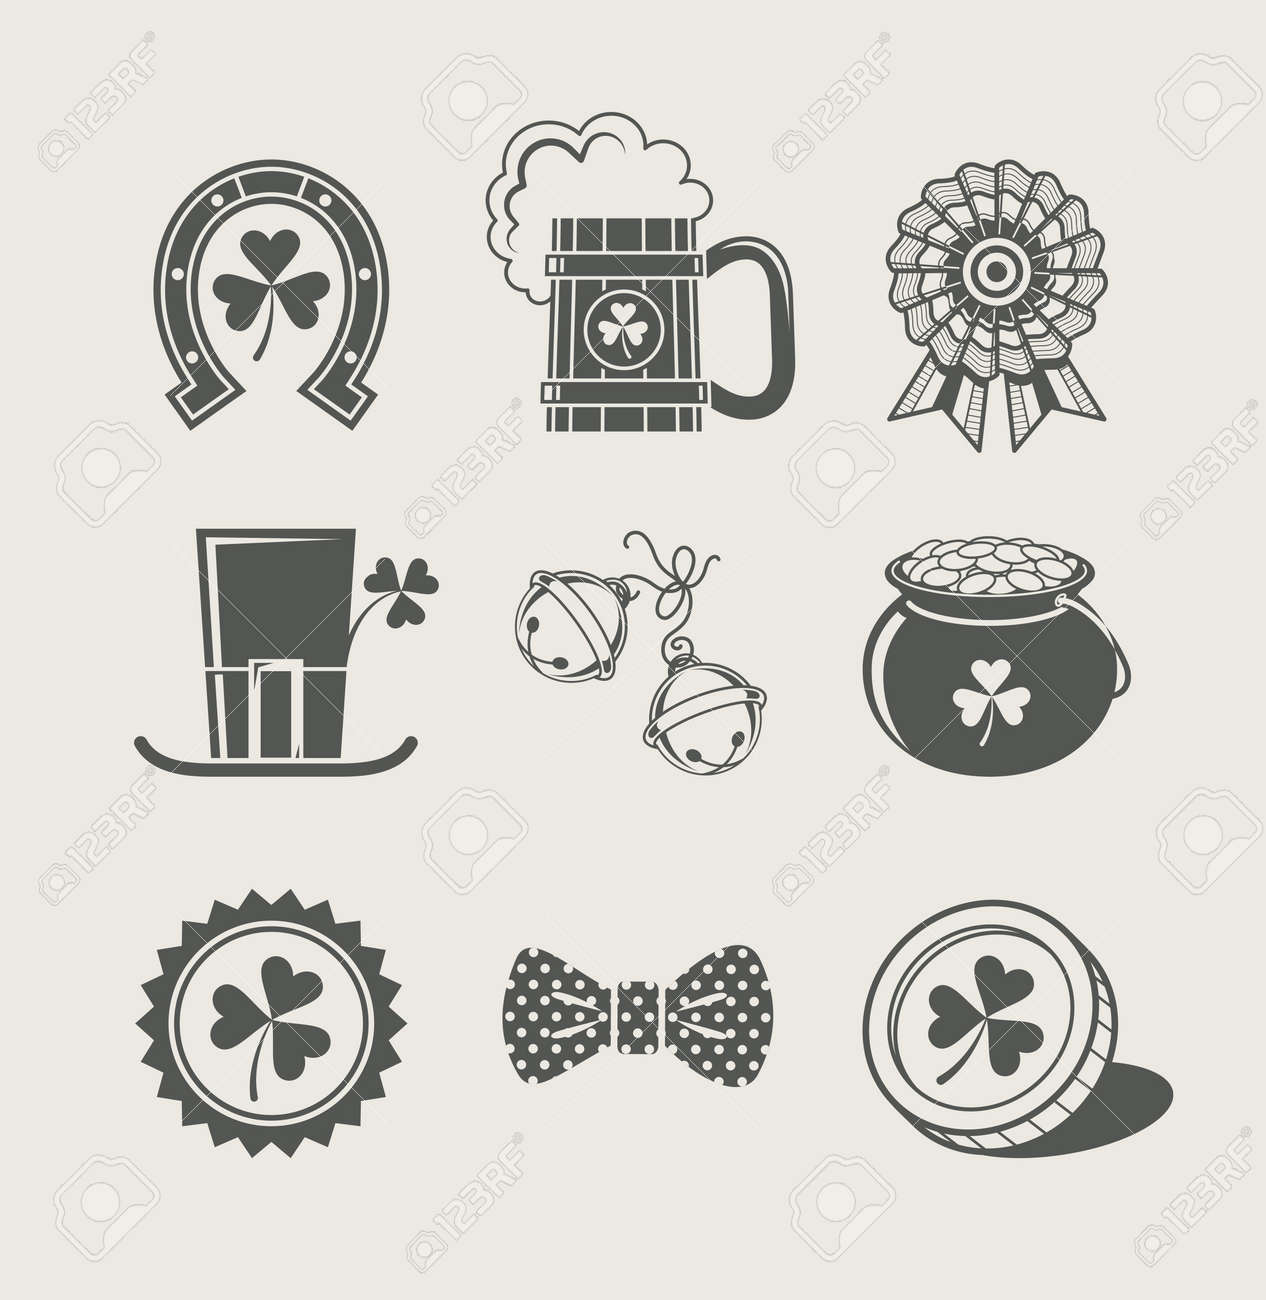 patrick's day set of icons  illustration Stock Vector - 17727920